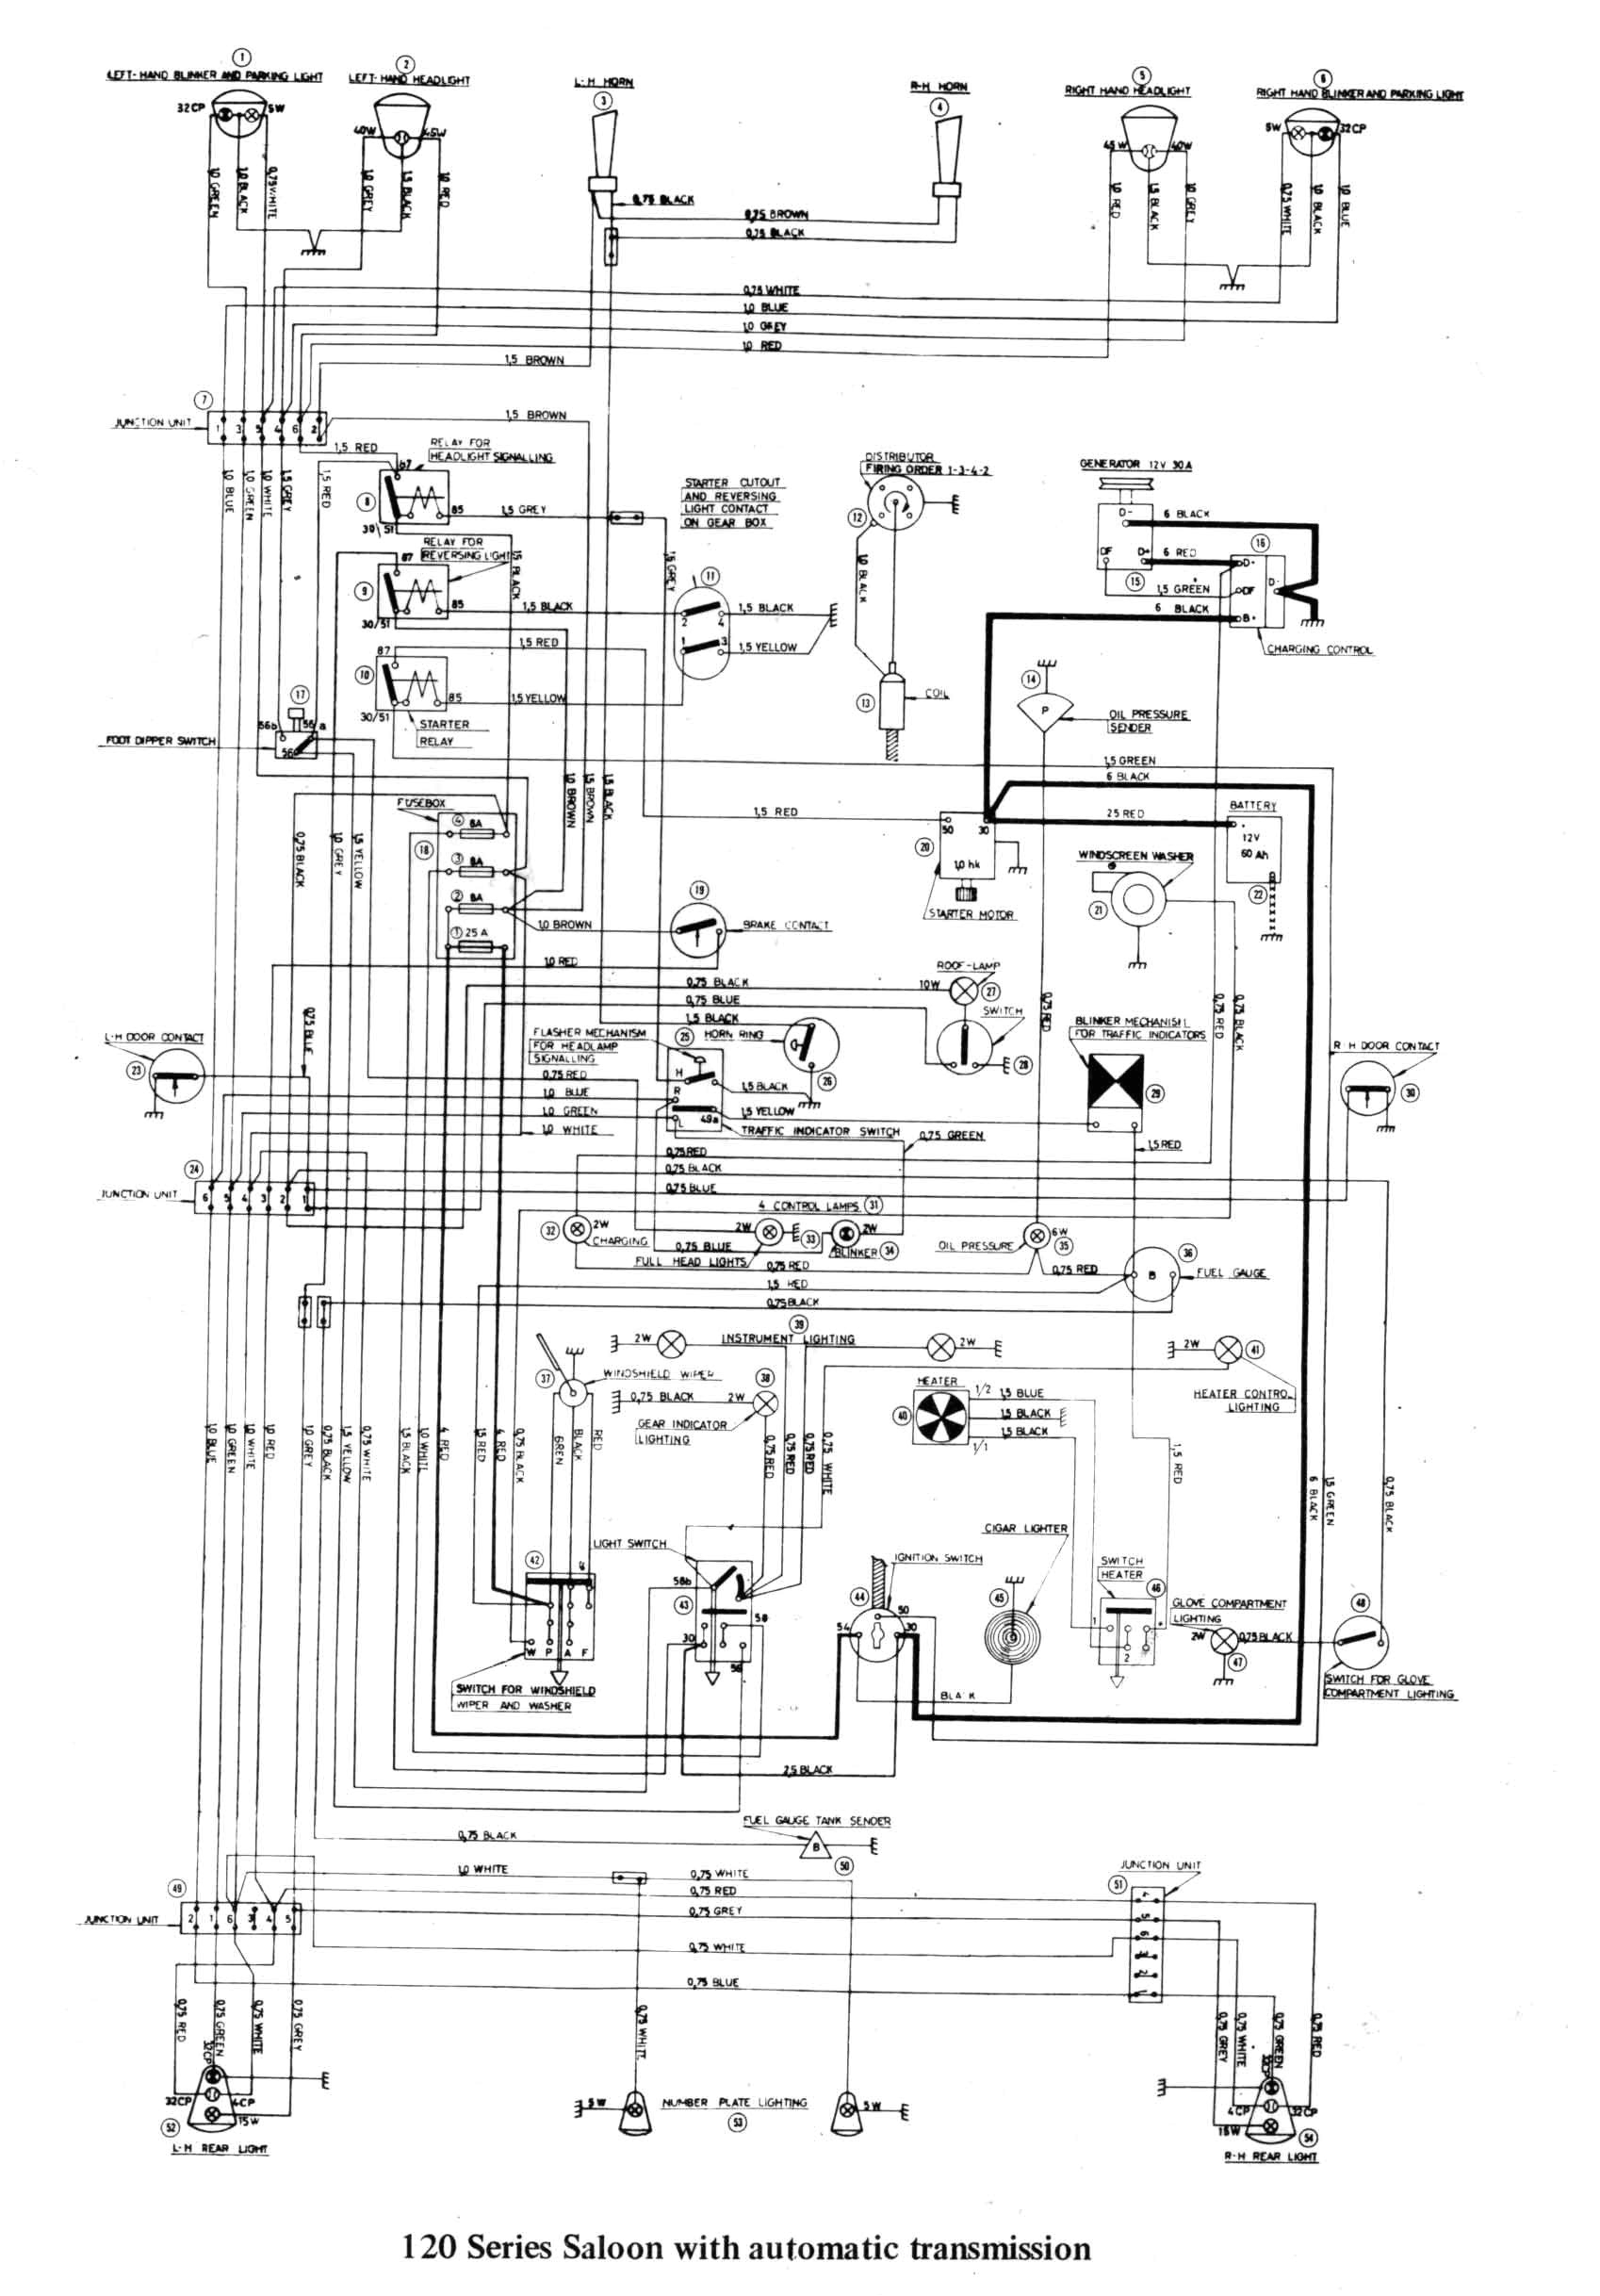 volvo s60 wiring diagram wiring diagram todays with volvo s80 t6 engine diagram 1999 jpg